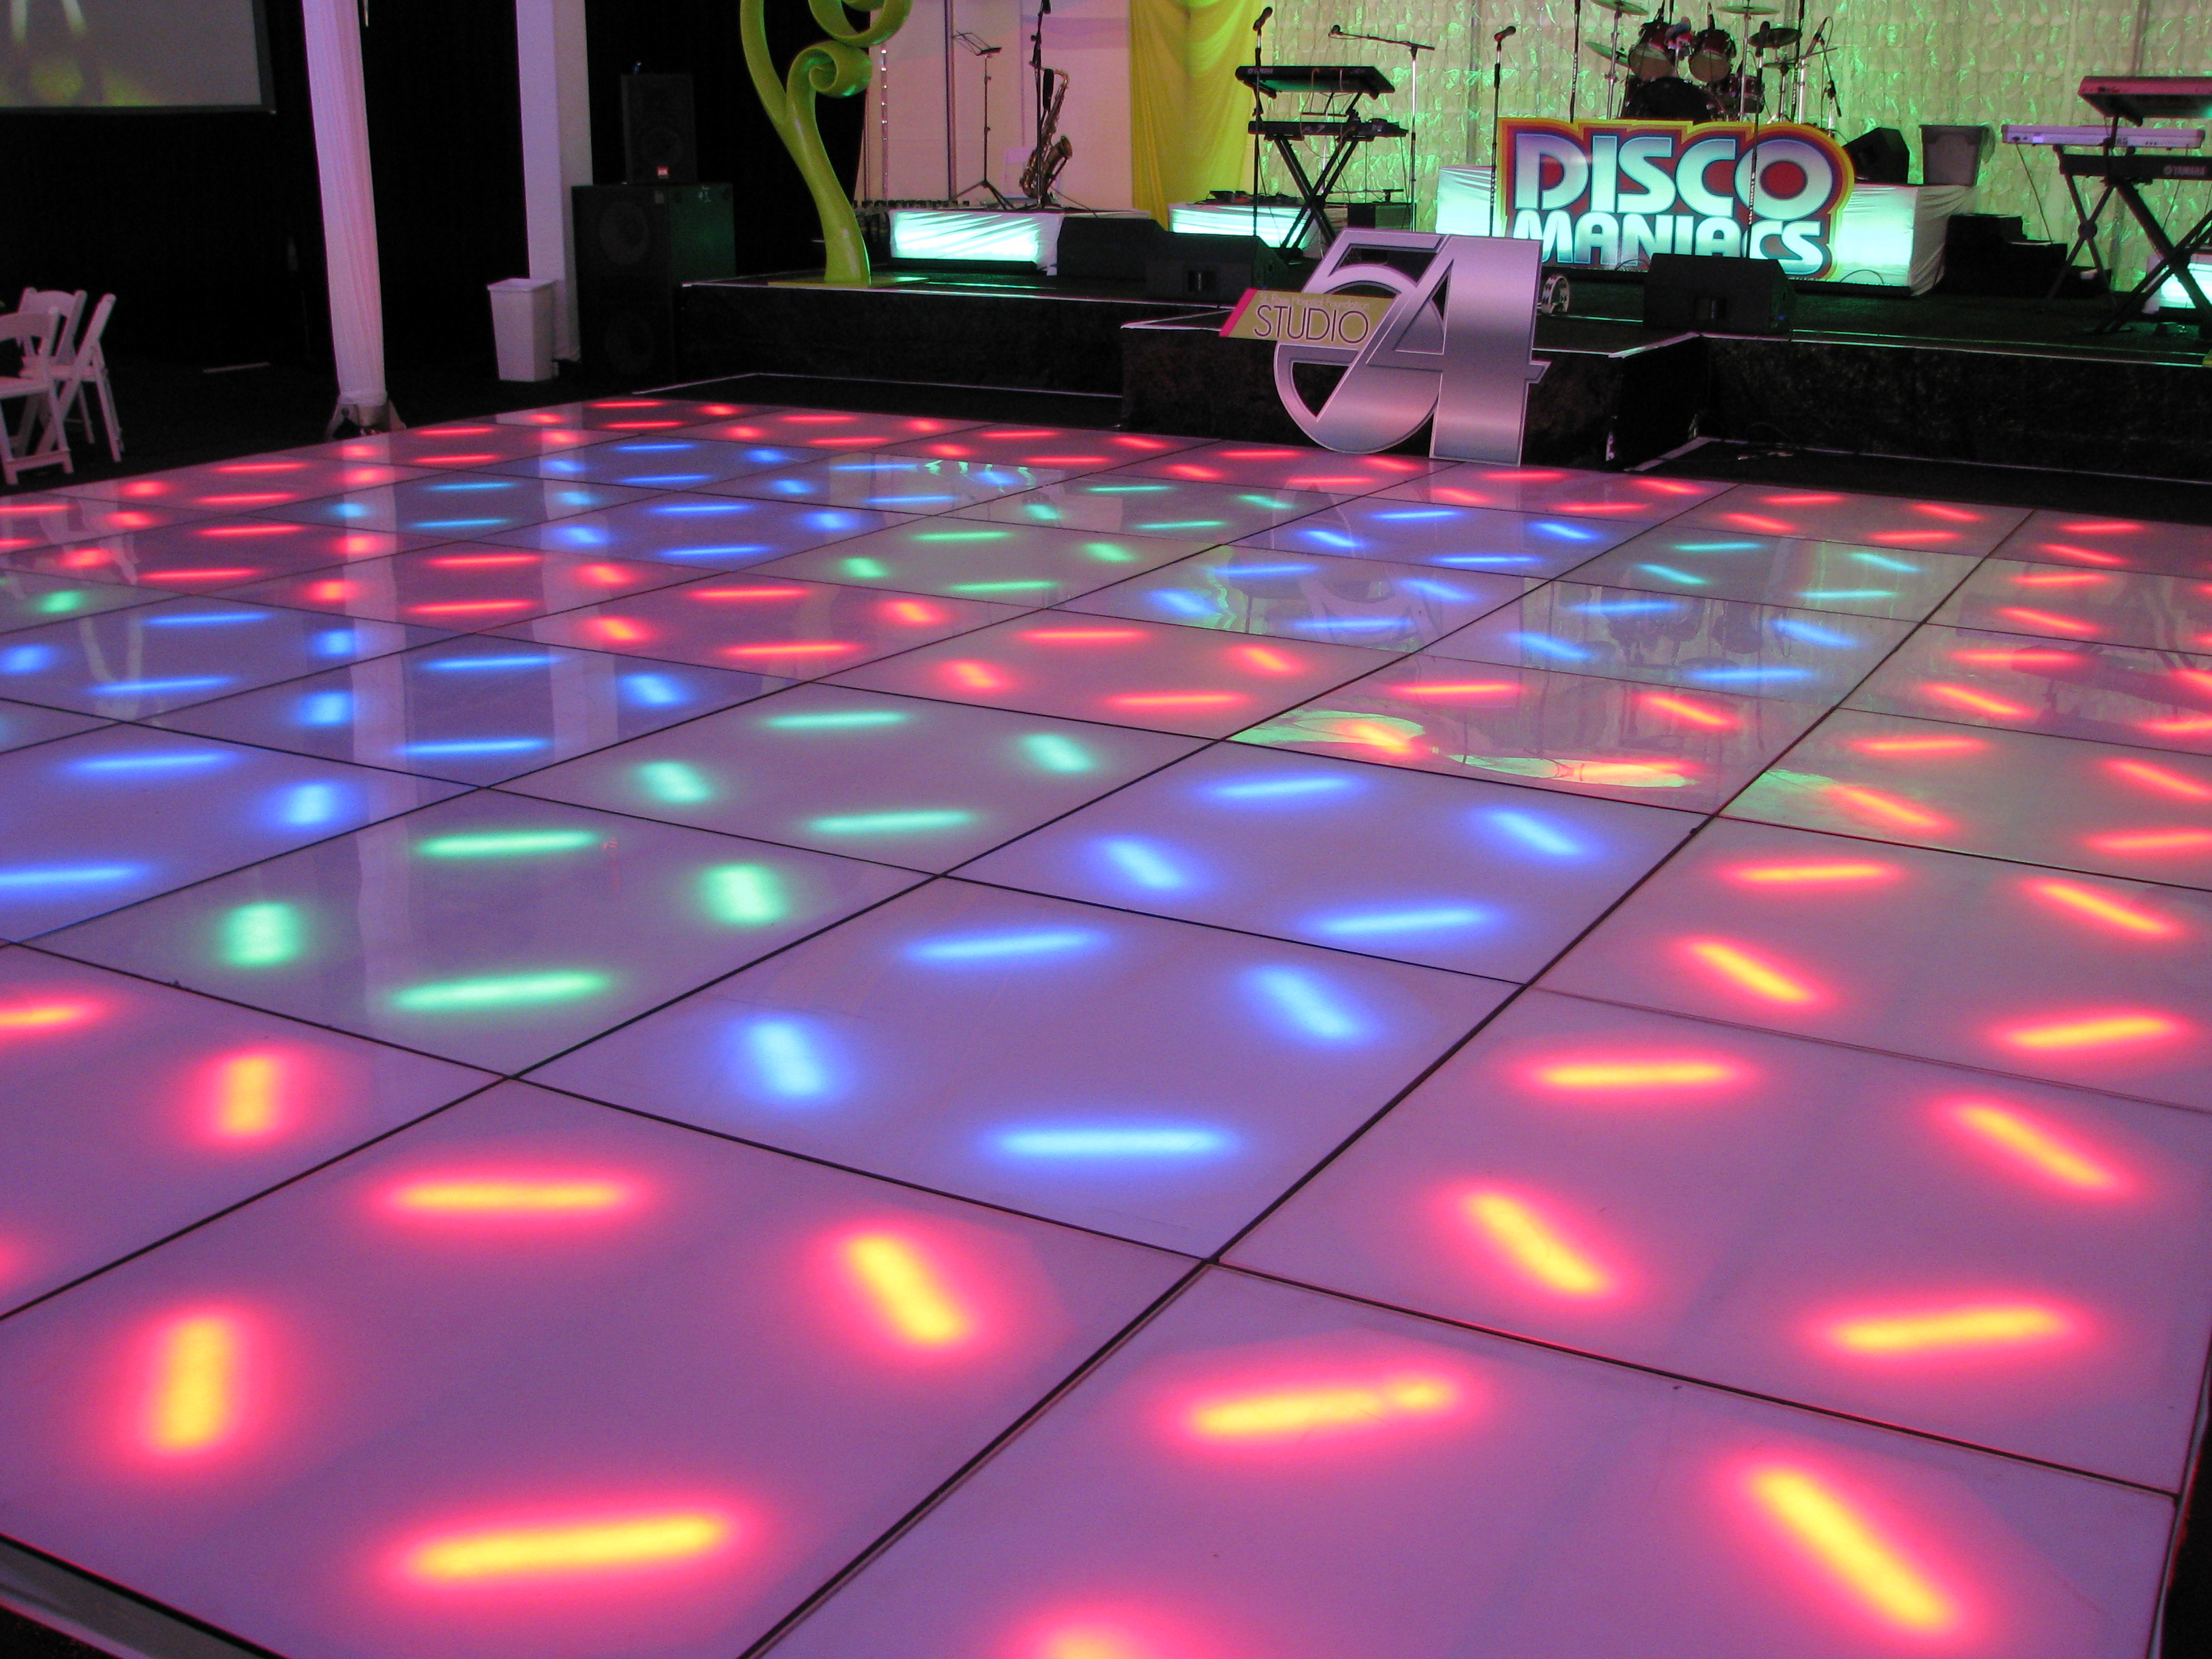 Dance floor etiquette best practices to follow on a for 1 2 3 4 get on the dance floor mp3